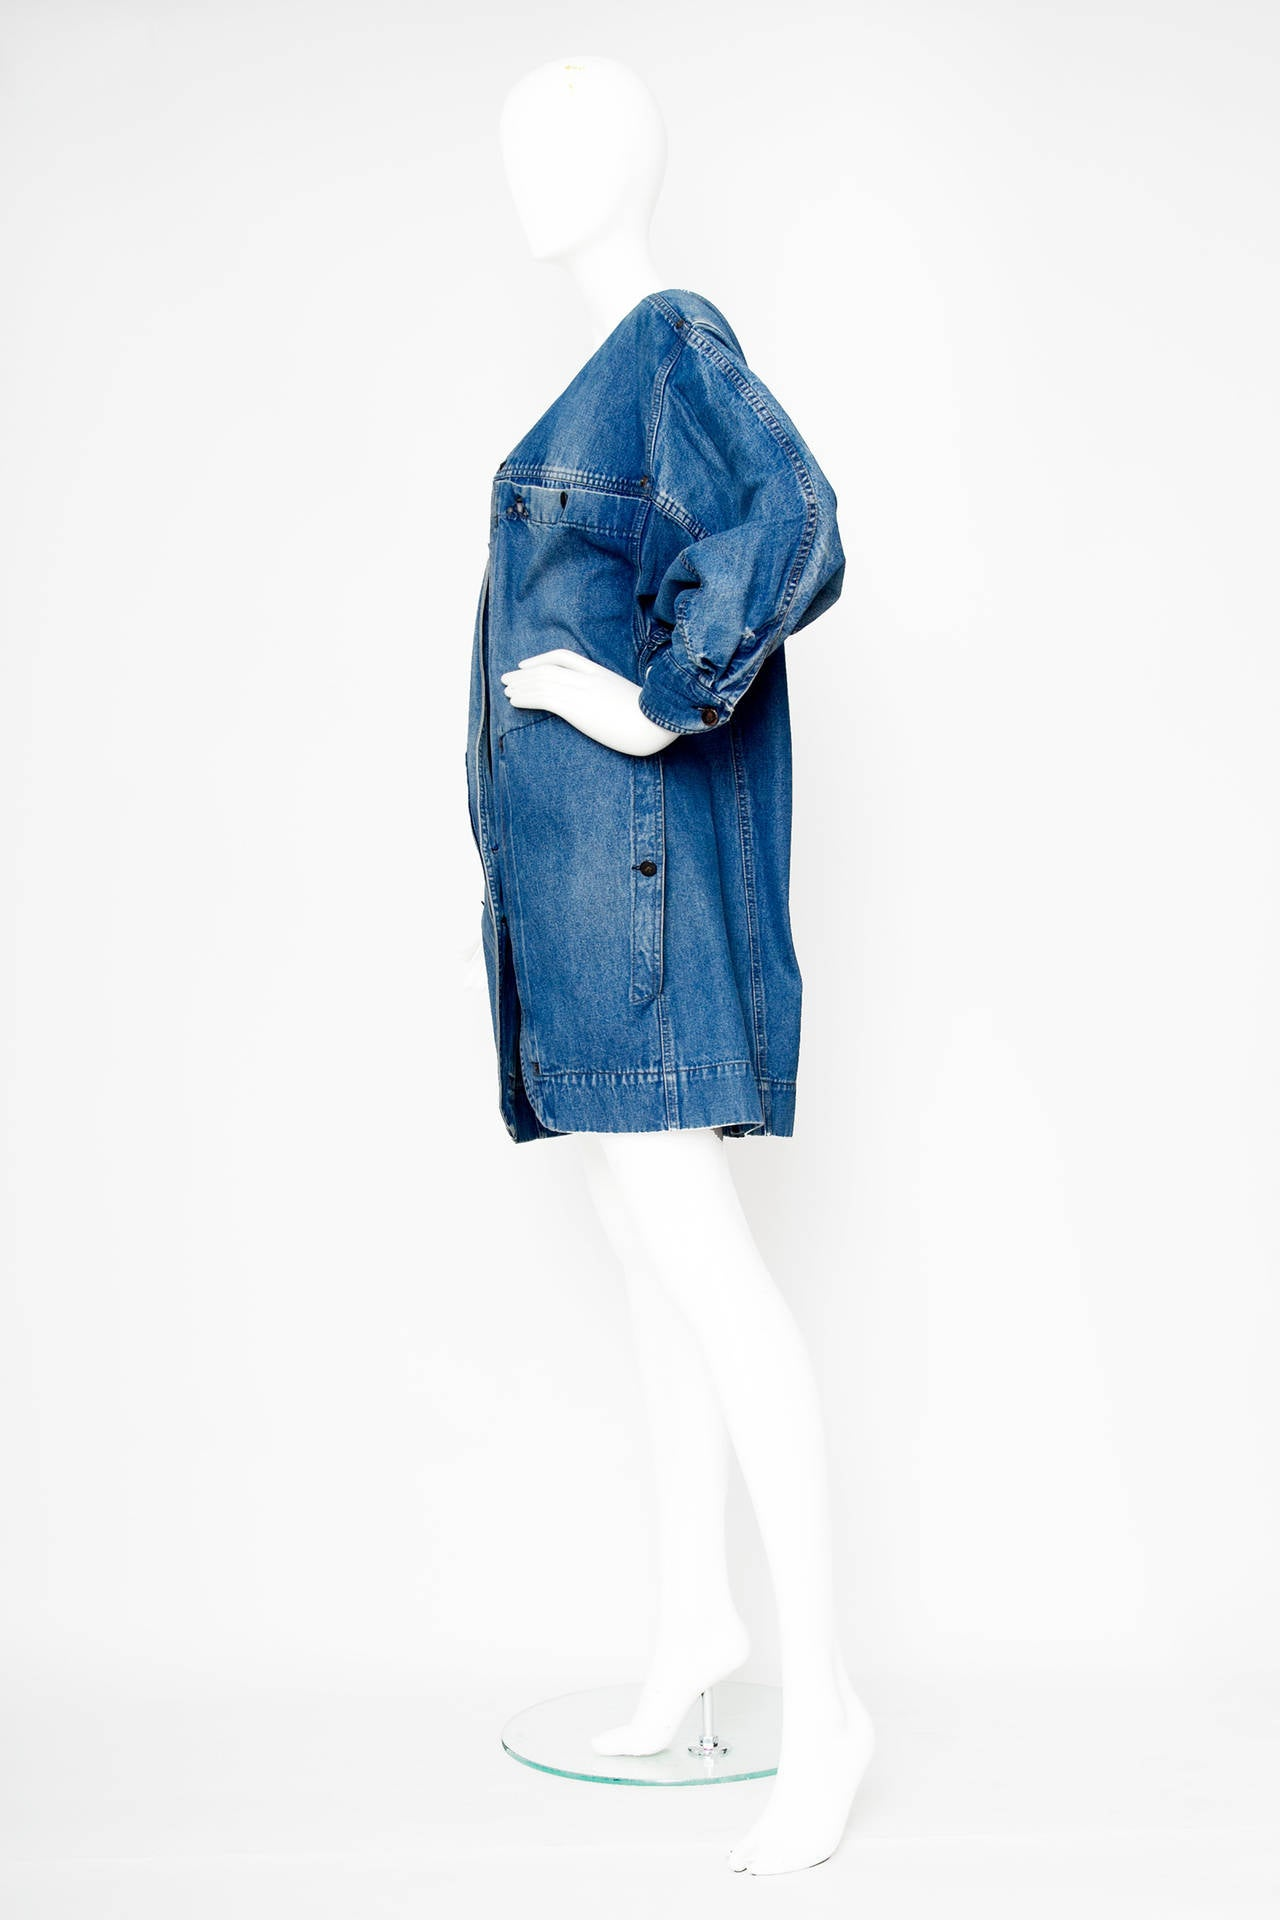 1980s claude montana denim jacket and skirt ensemble at